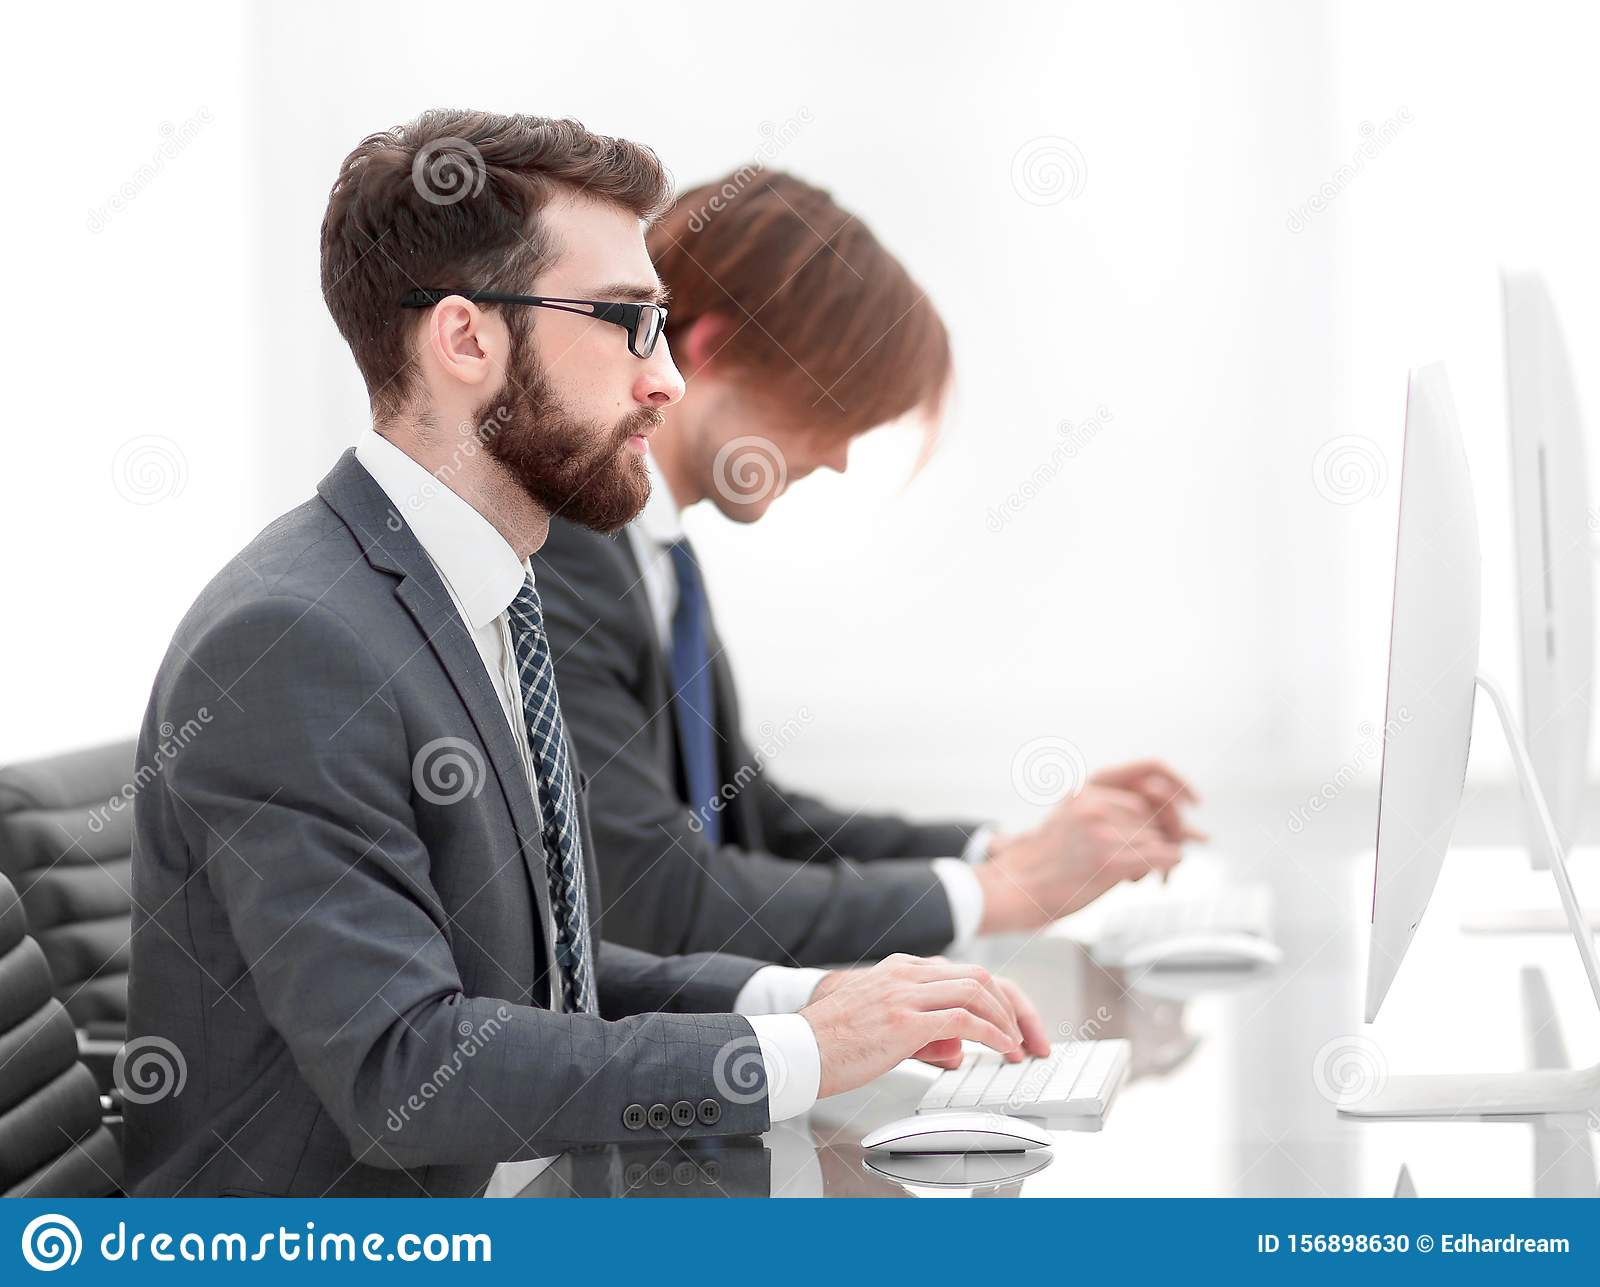 Company employees working in software development